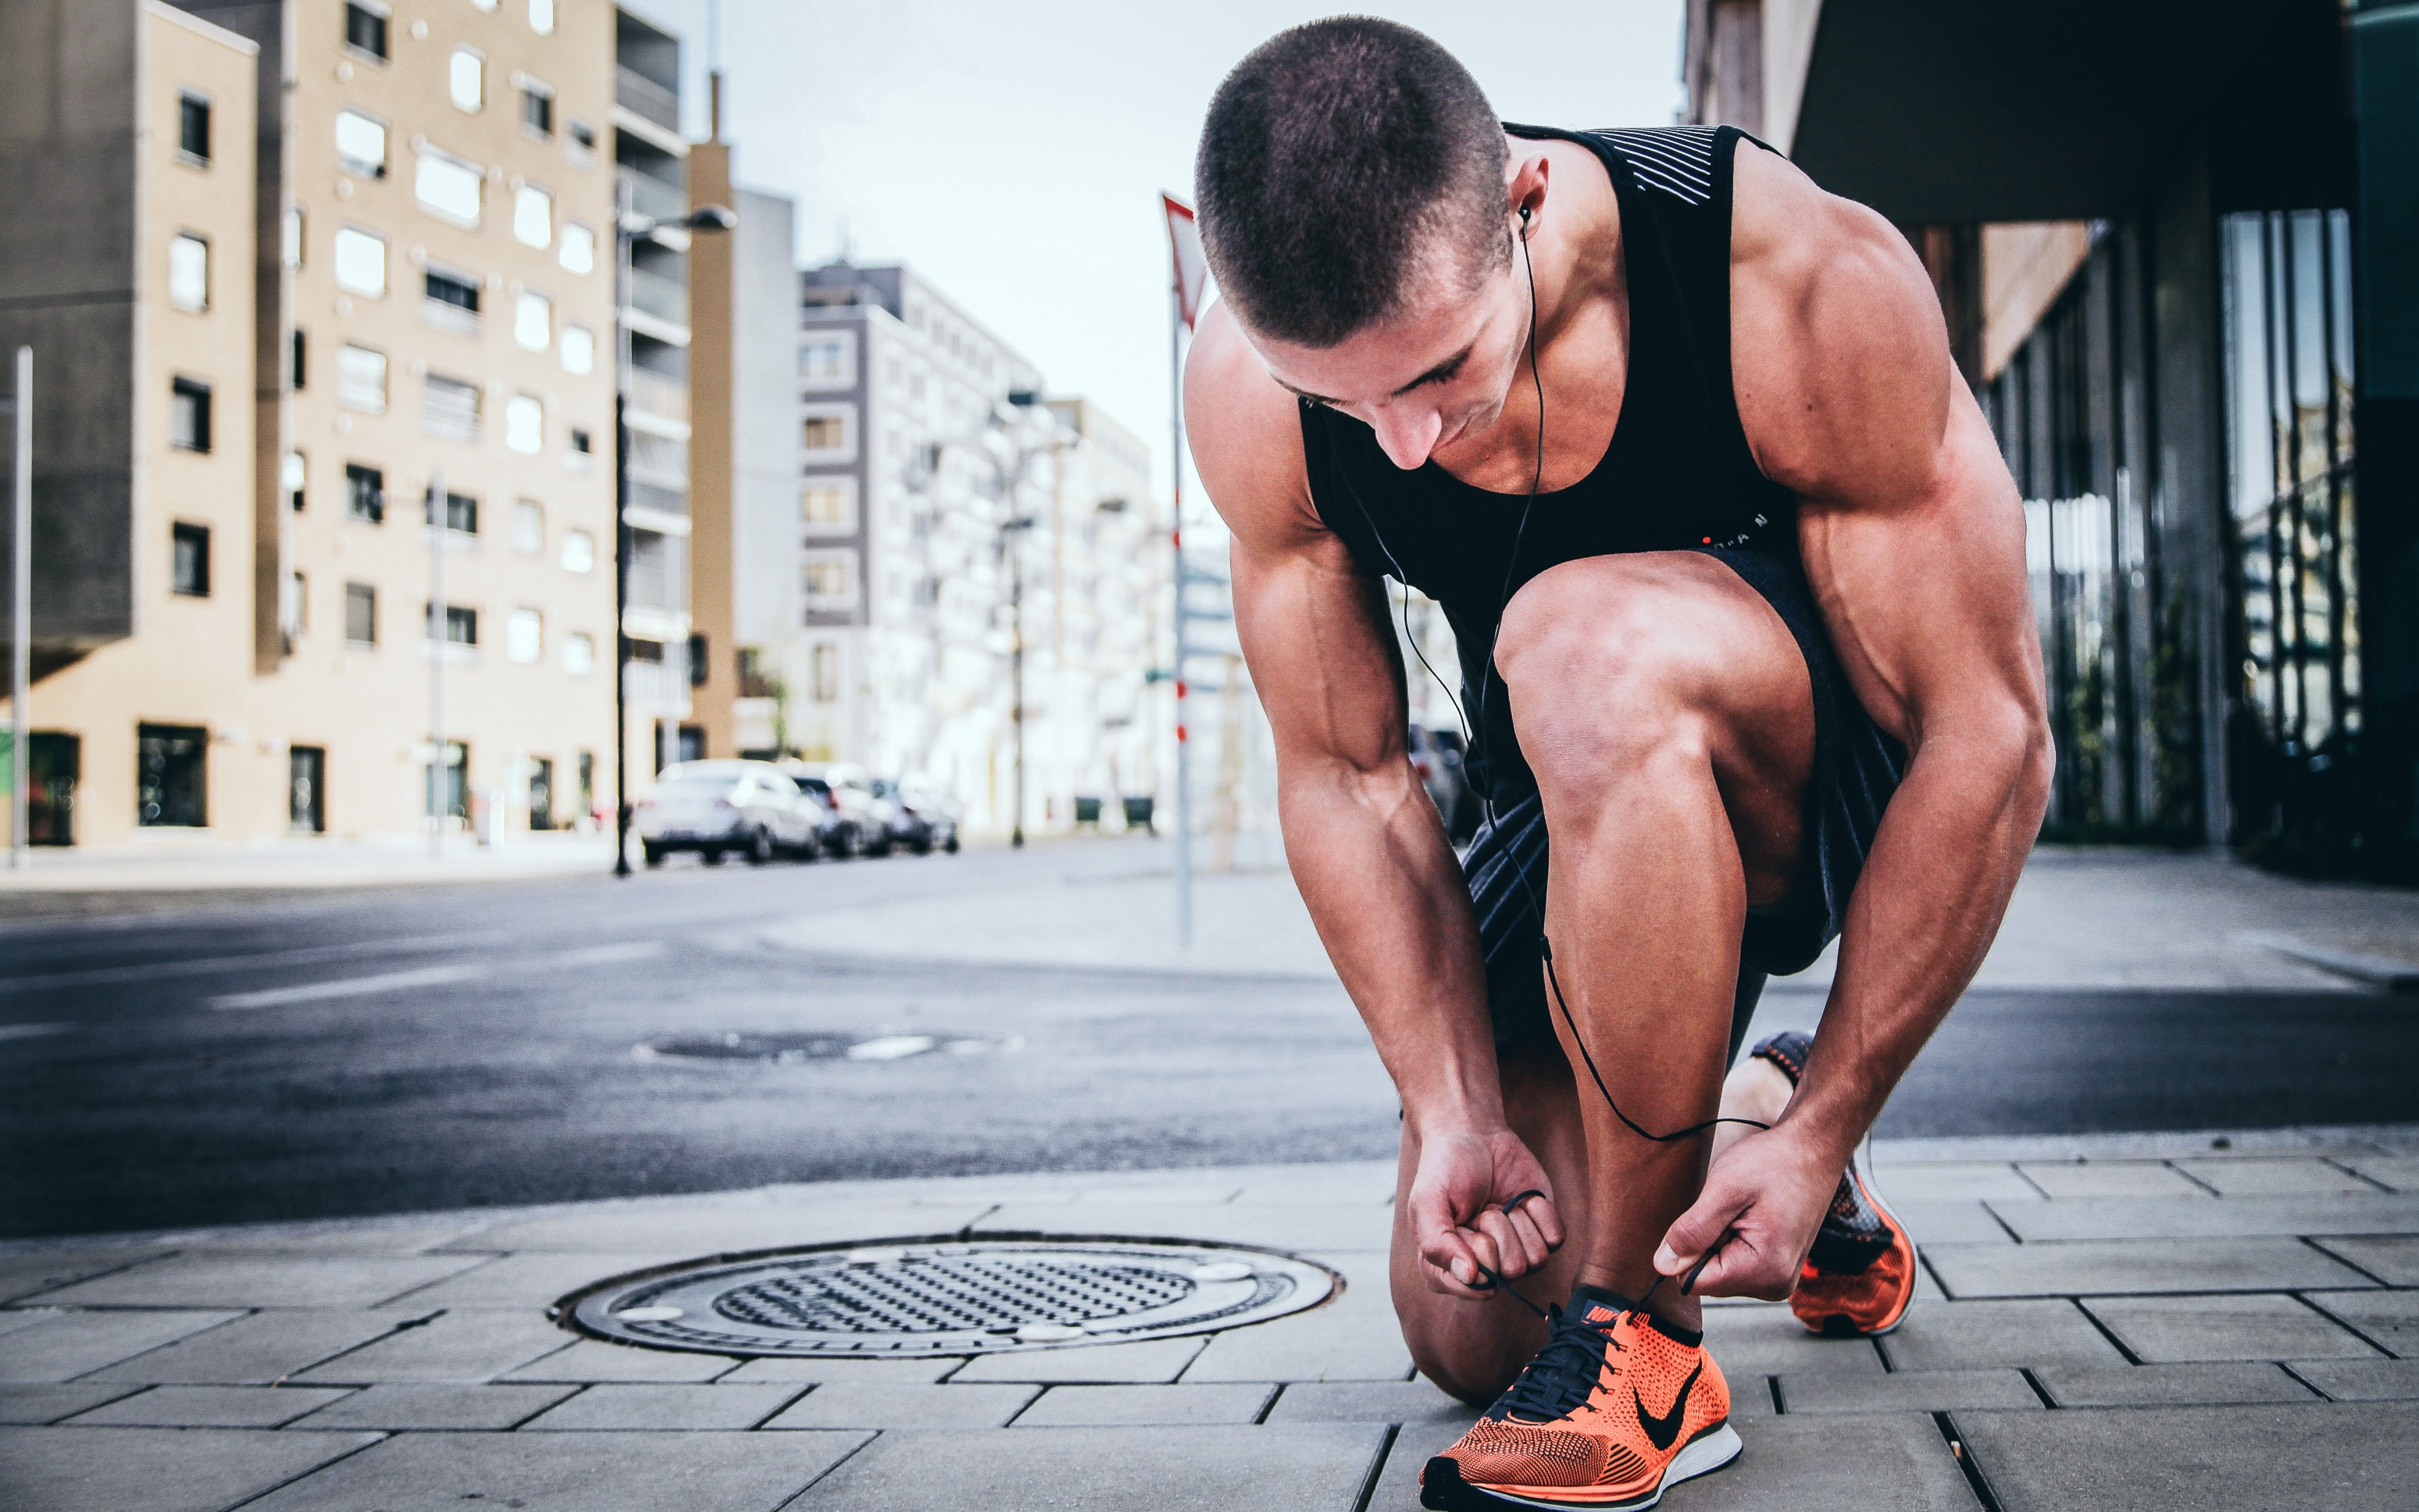 Man tying his shoes during a run